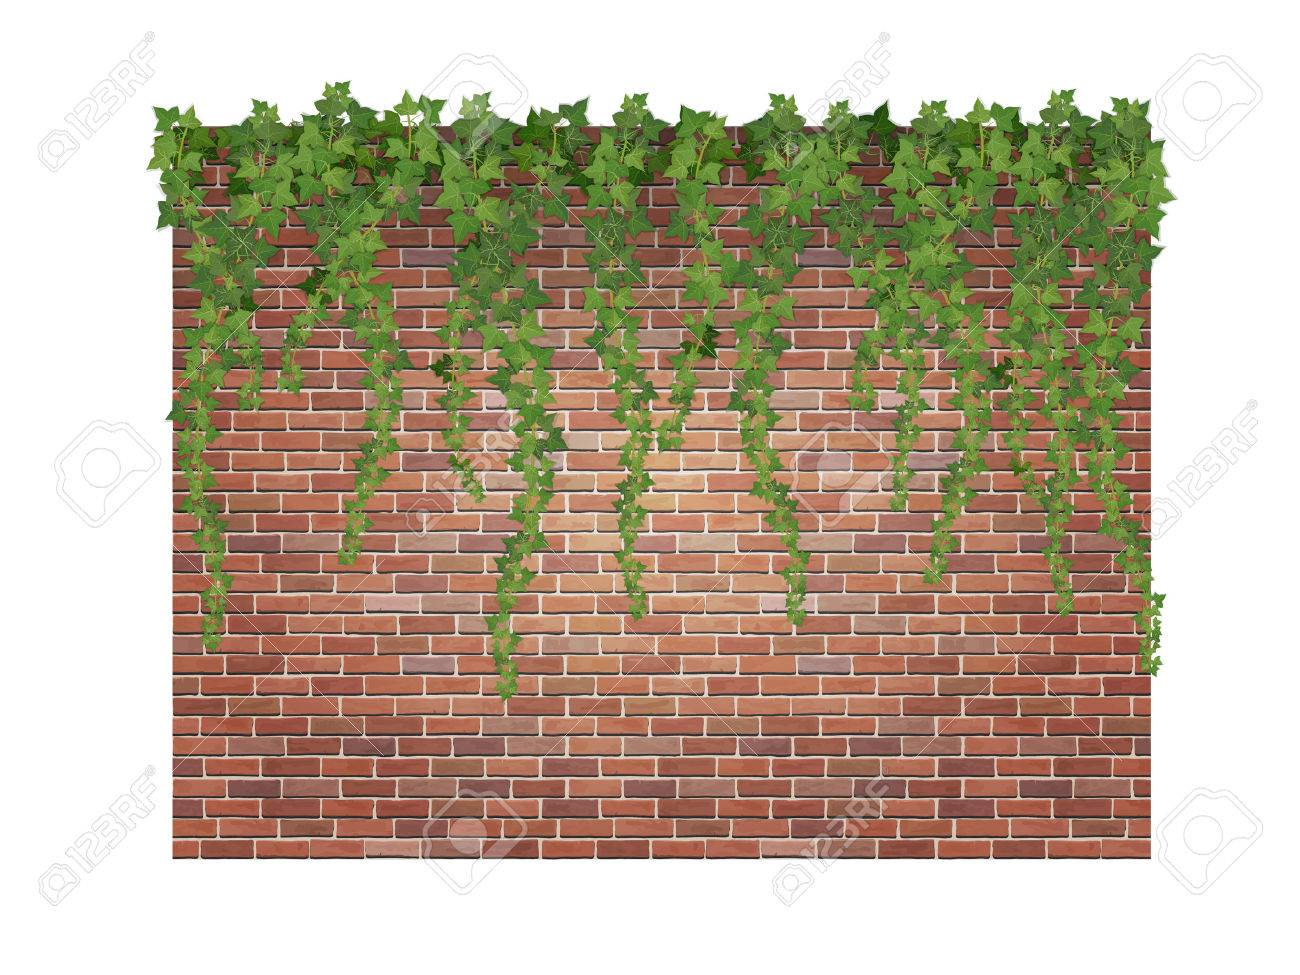 Hanging down ivy shoots on the brick wall background. Stock Vector - 44238432